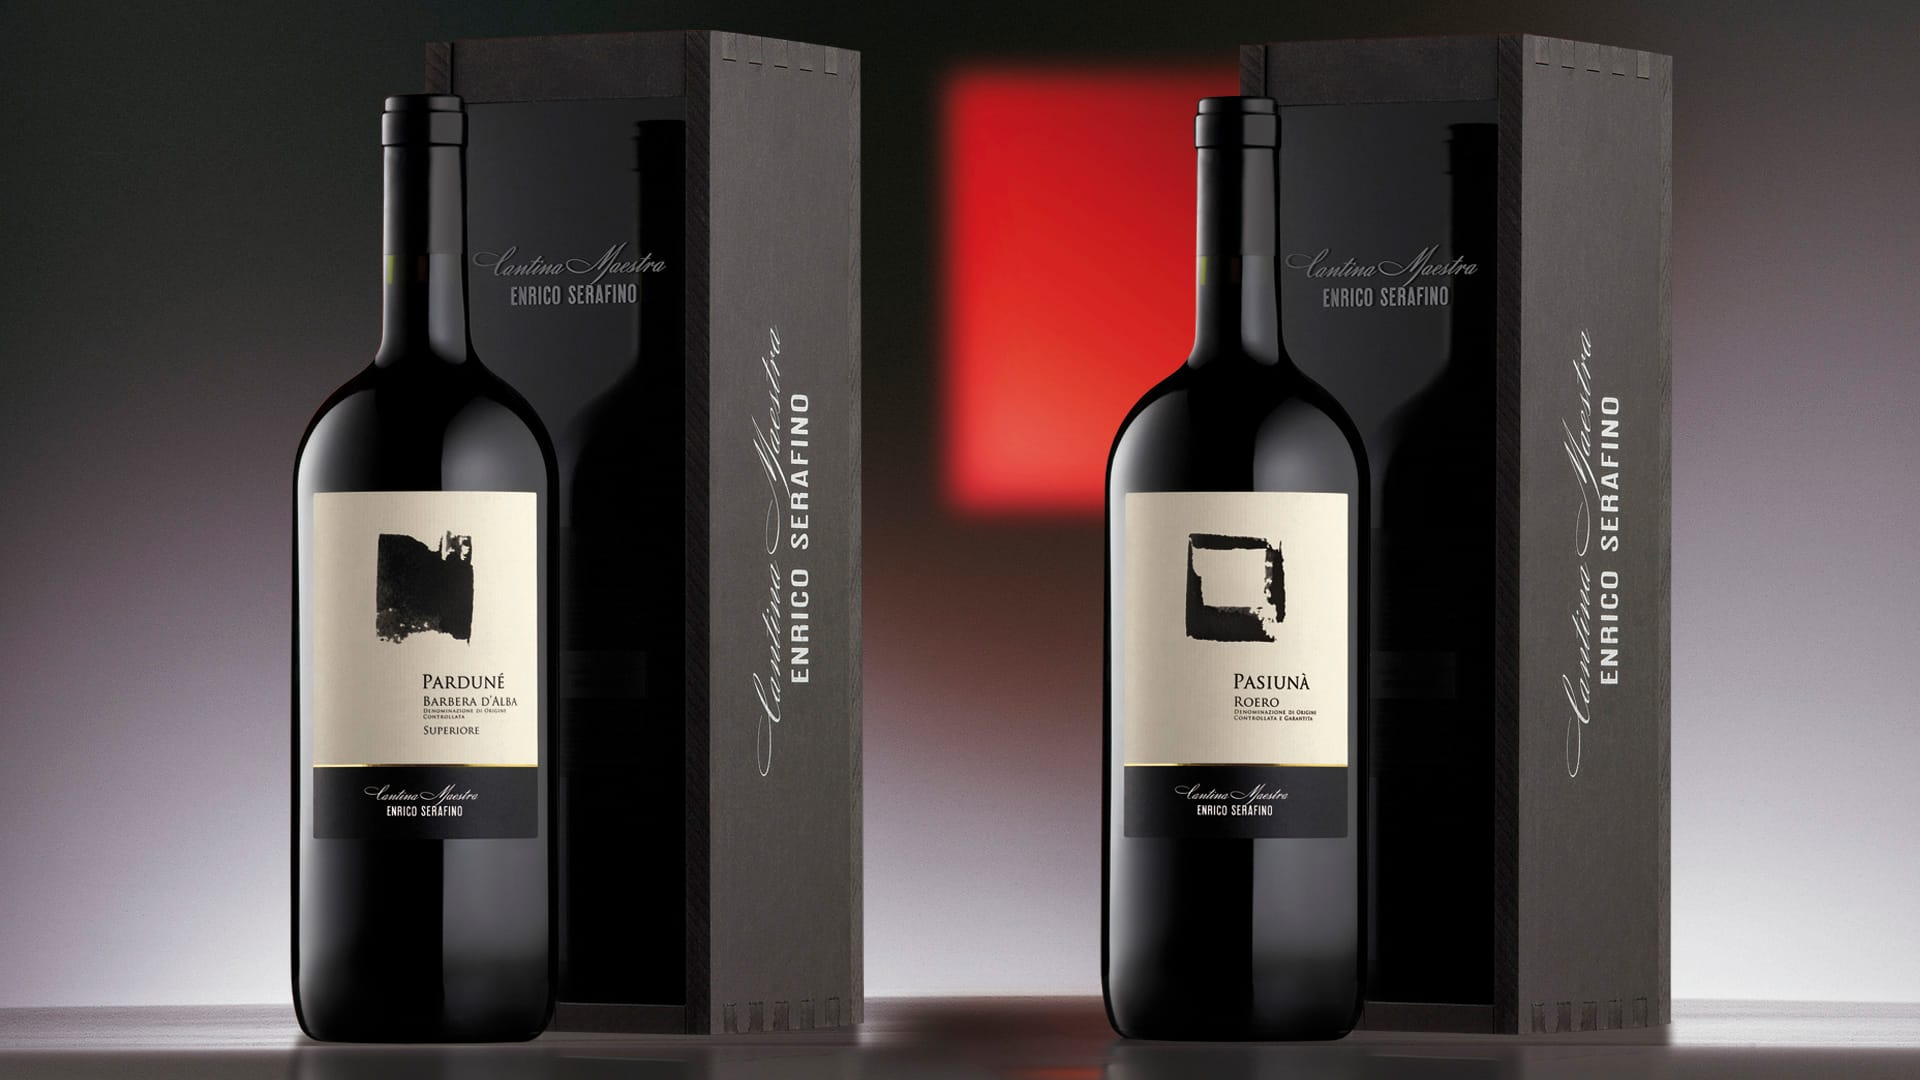 Campari Wines Enrico Serafino packaging Classici Top